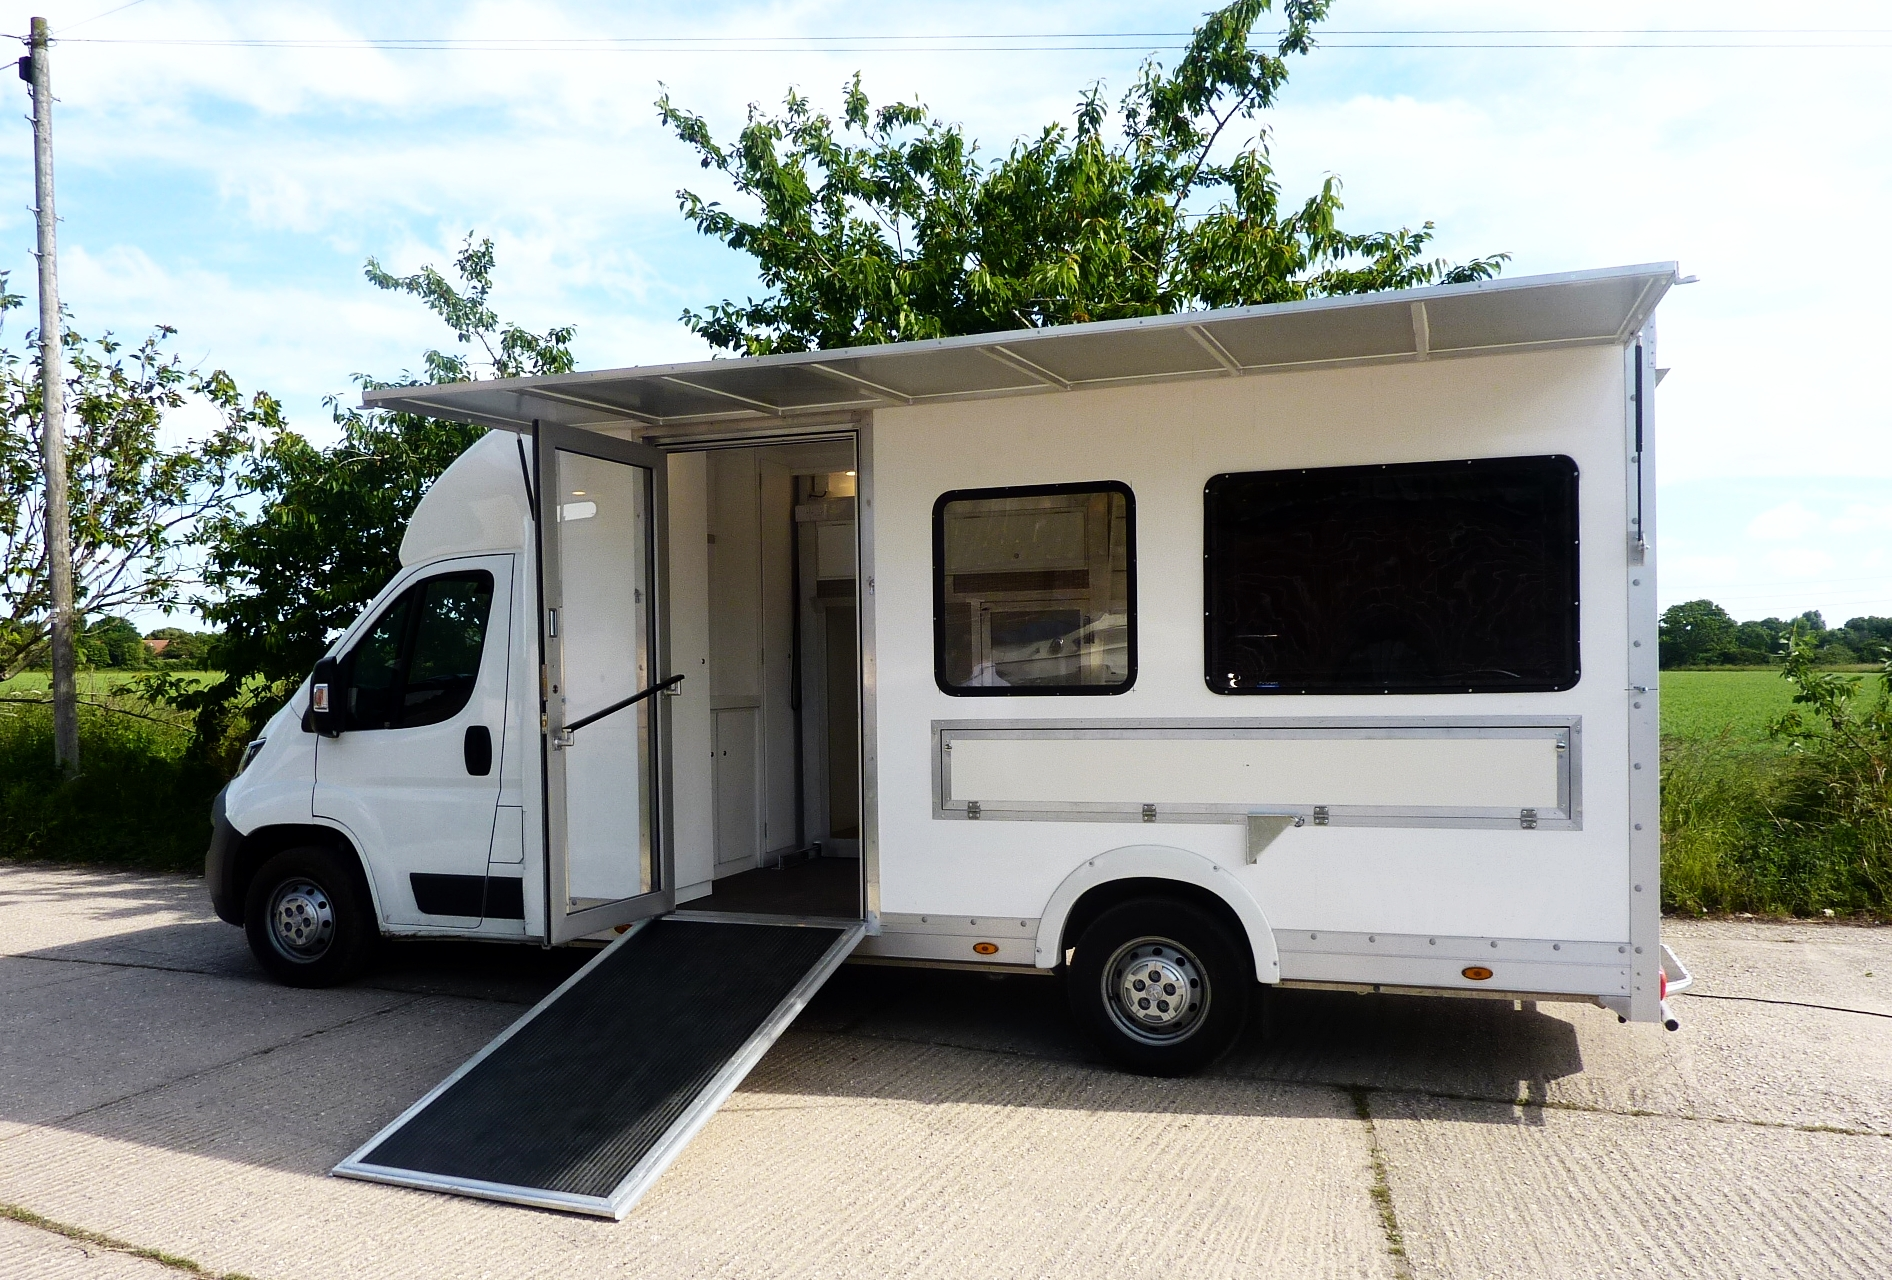   Exhibition trailer   Display Truck   Exhibition vehicle   Truck   Motorised display unit   Promotional truck